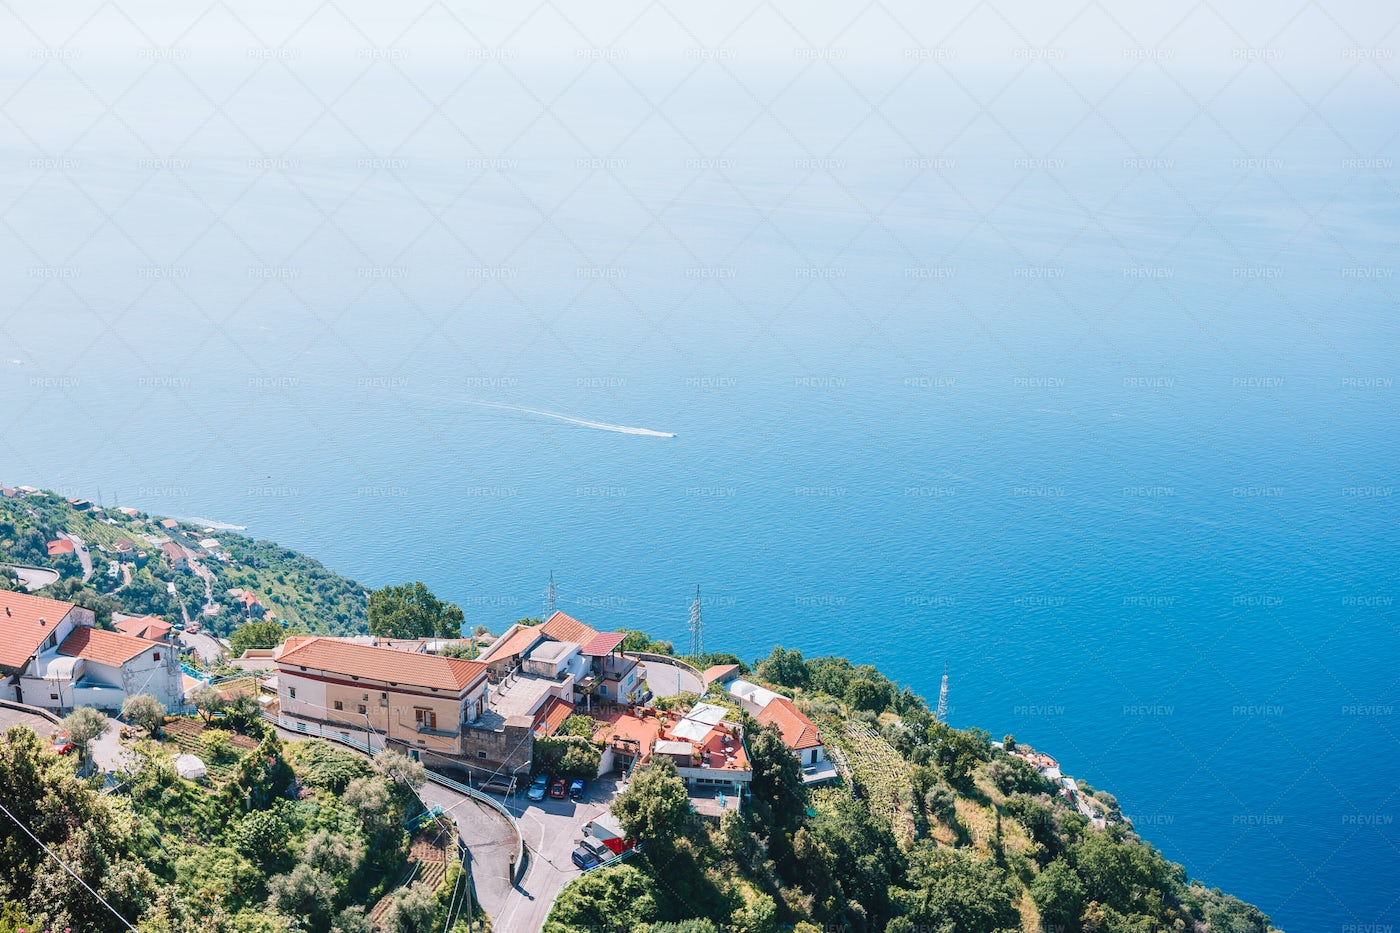 Village On A Cliff Side: Stock Photos